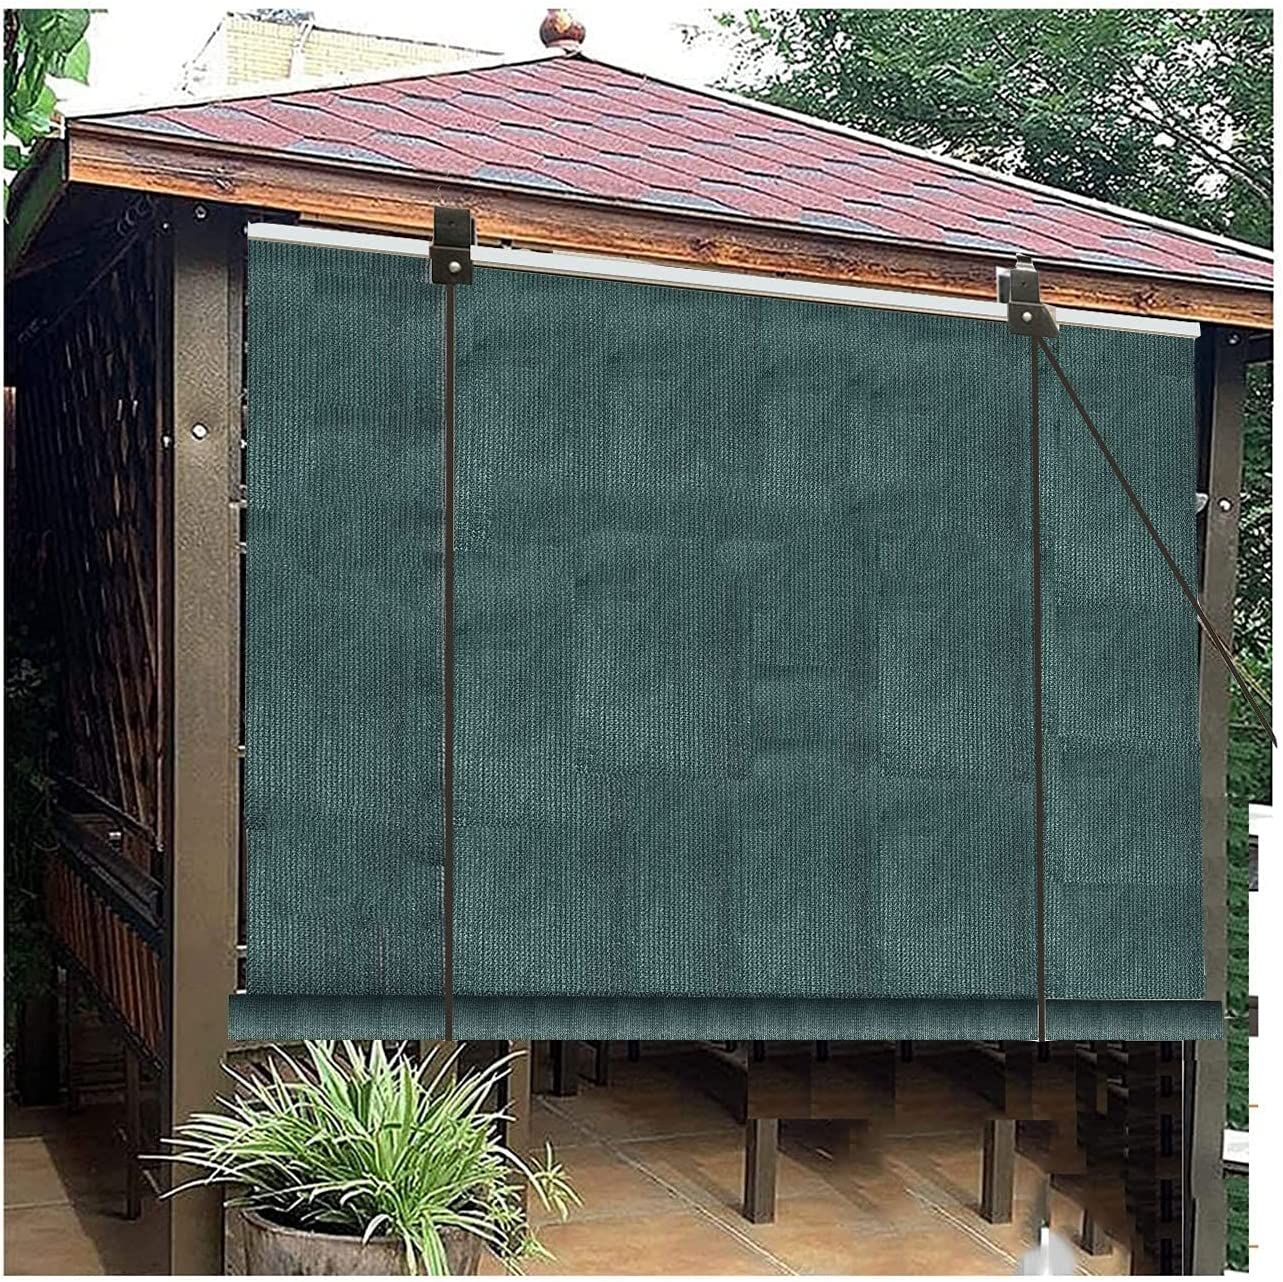 XYUfly20 Partition Sale SALE% OFF Shade Screen Blackout 95% of Online limited product Sunshade U Block